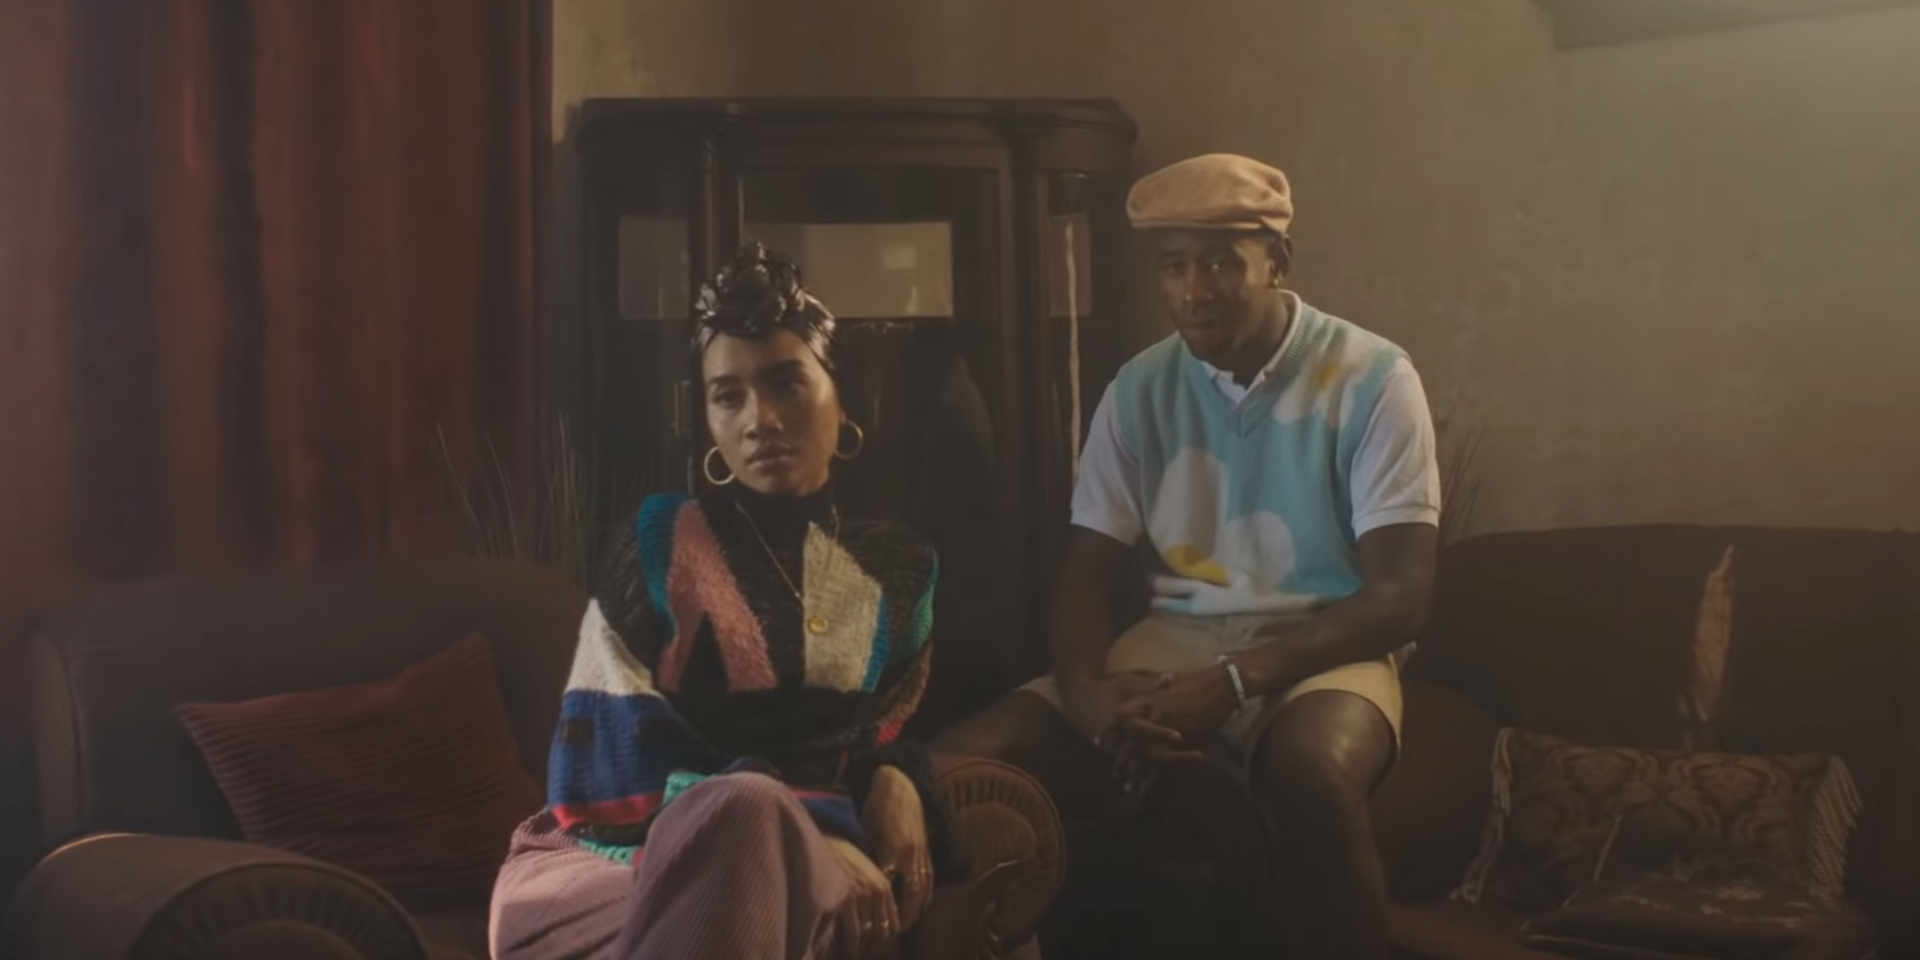 Yuna and Tyler, The Creator link up for 'Castaway' music video